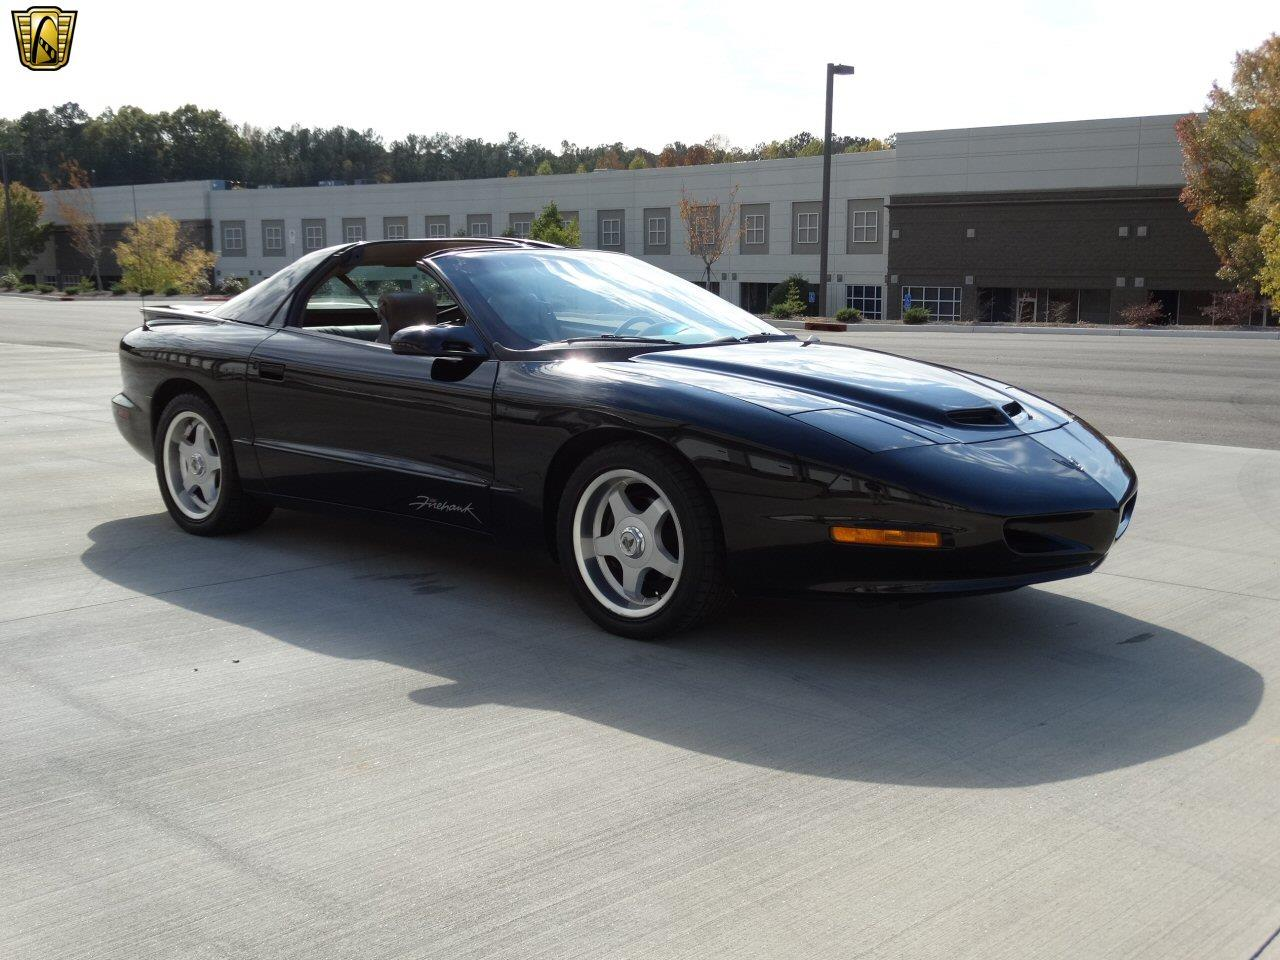 Large Picture of 1994 Pontiac Firebird - $20,995.00 Offered by Gateway Classic Cars - Atlanta - KF4C